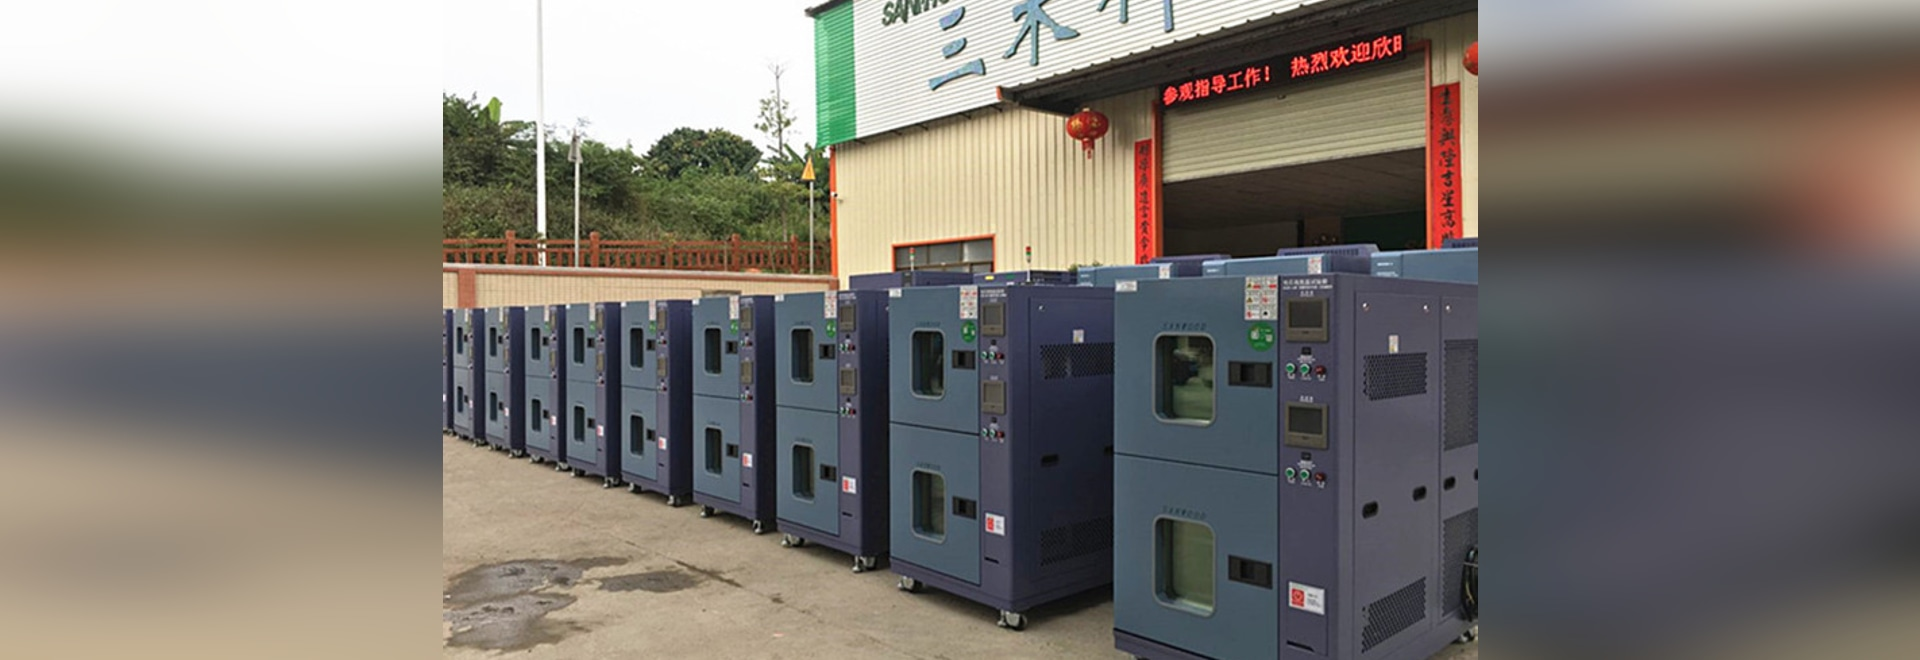 The First 20Pcs battery high low temperature test chamber of BMW company are ready to be shipped on 16th, April